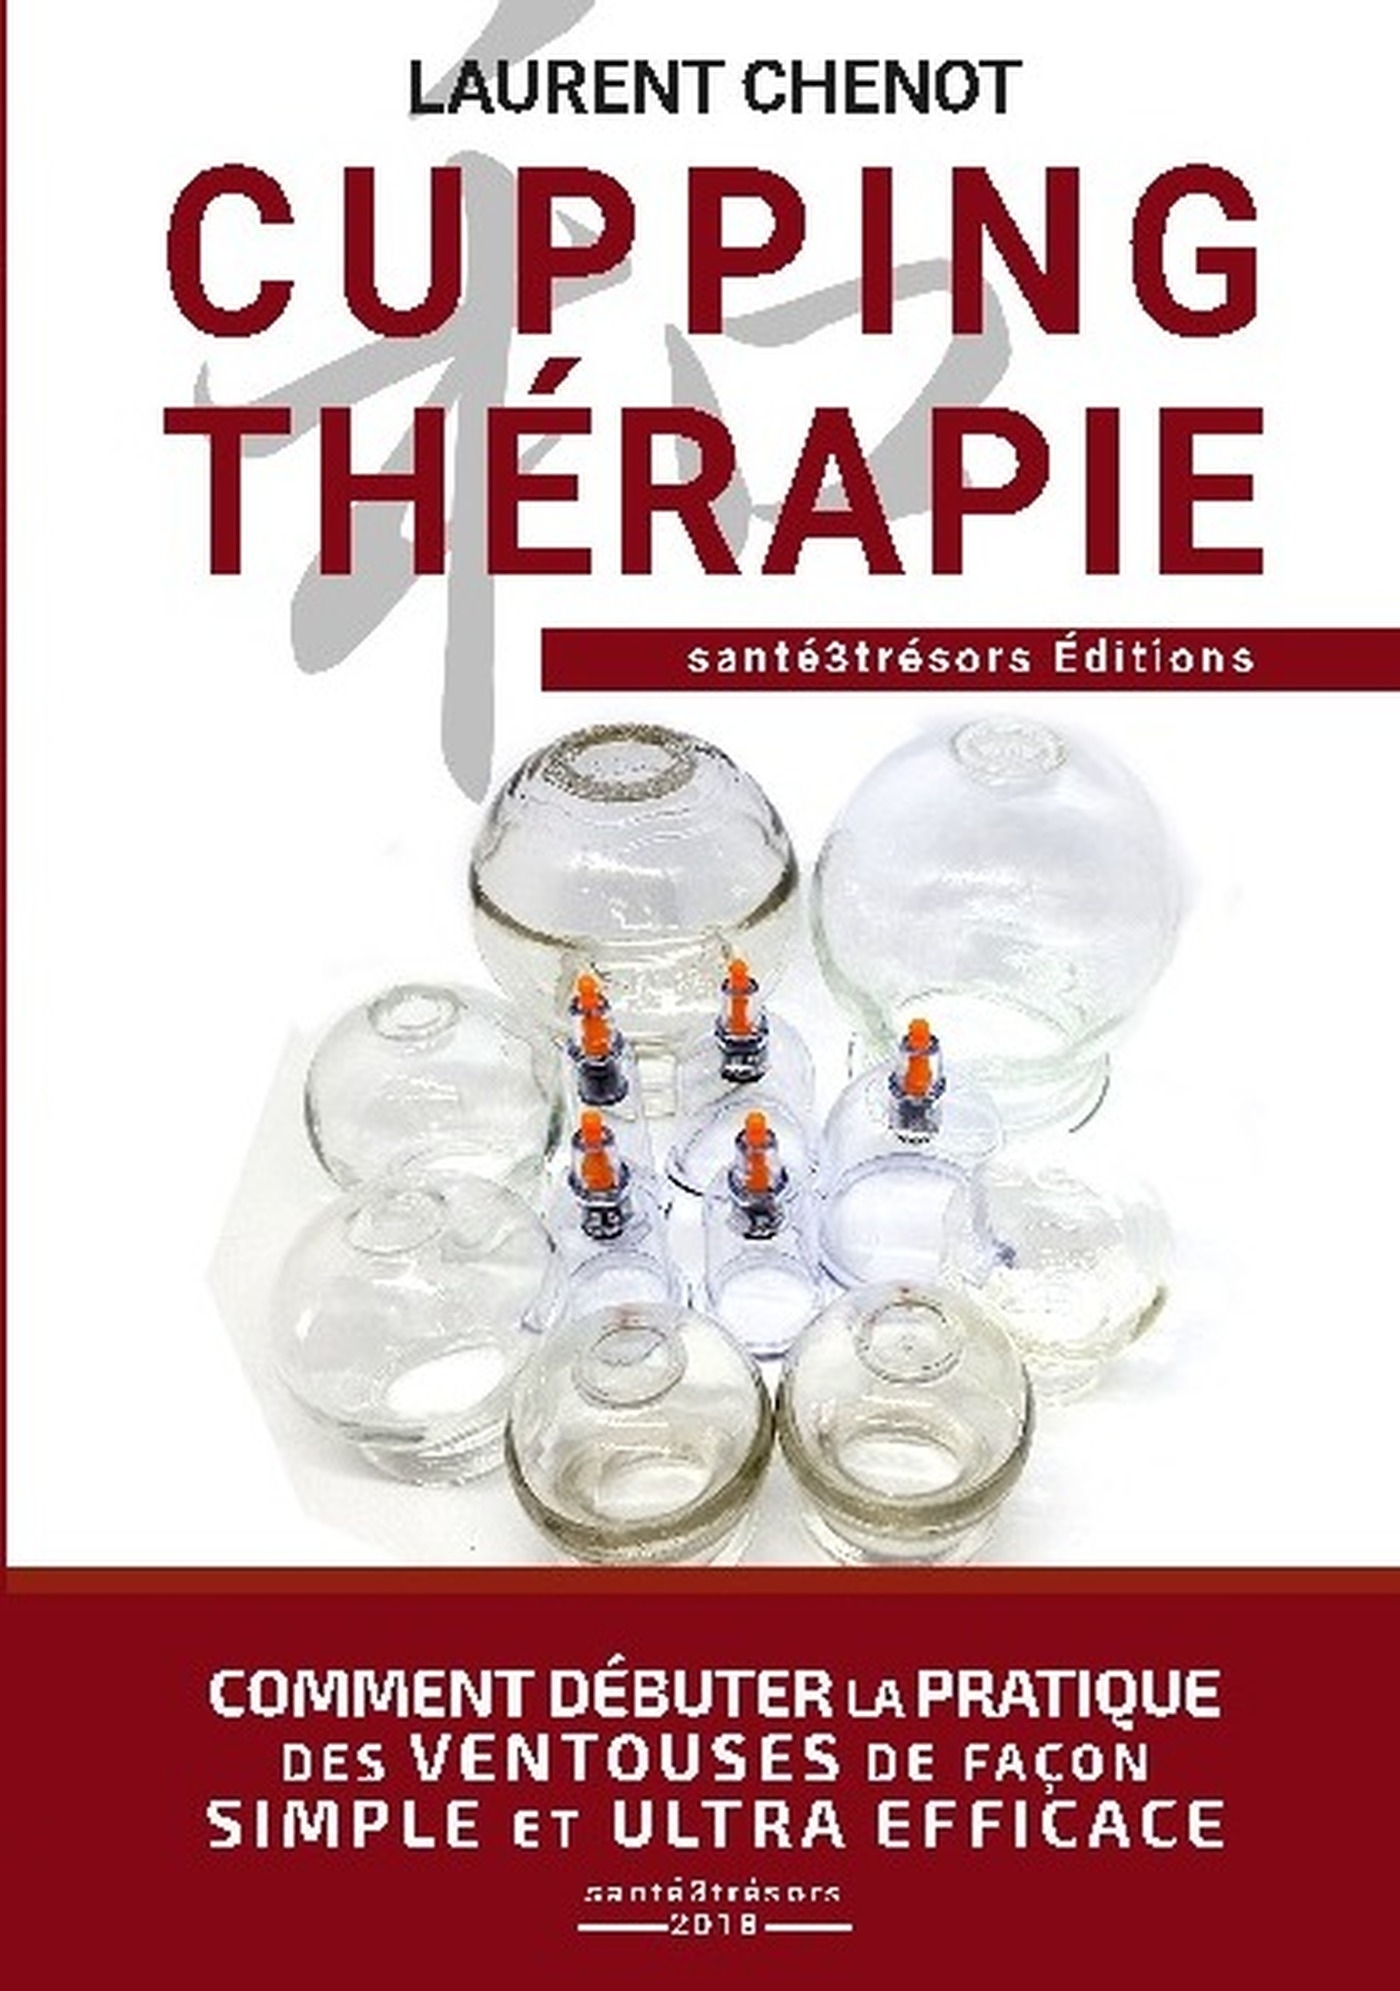 CUPPING THERAPIE - COMMENT DEBUTER LA PRATIQUE DES VENTOUSES DE FACON SIMPLE ET ULTRA EFFICACE.